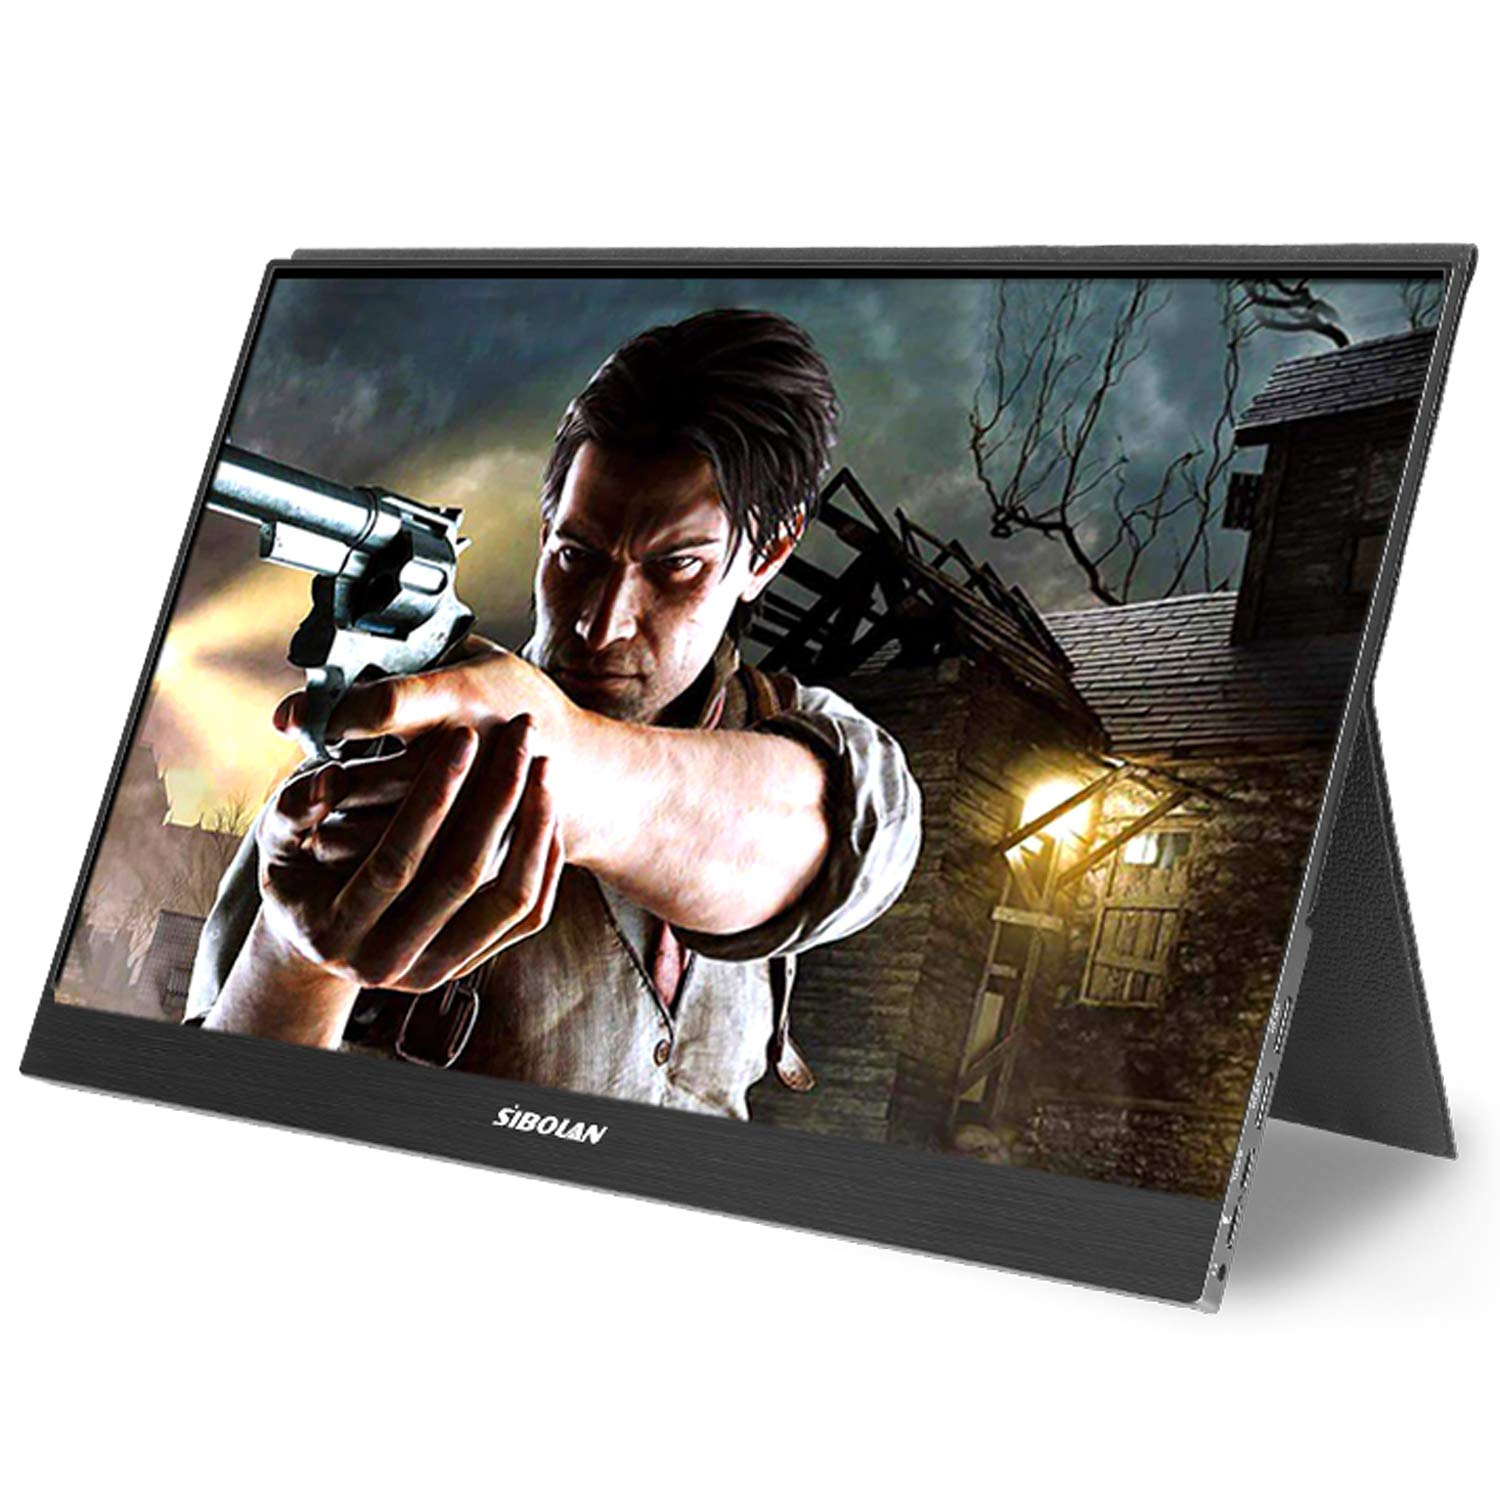 The Best 11 Portable Monitors (Reviewed December 2019) 3